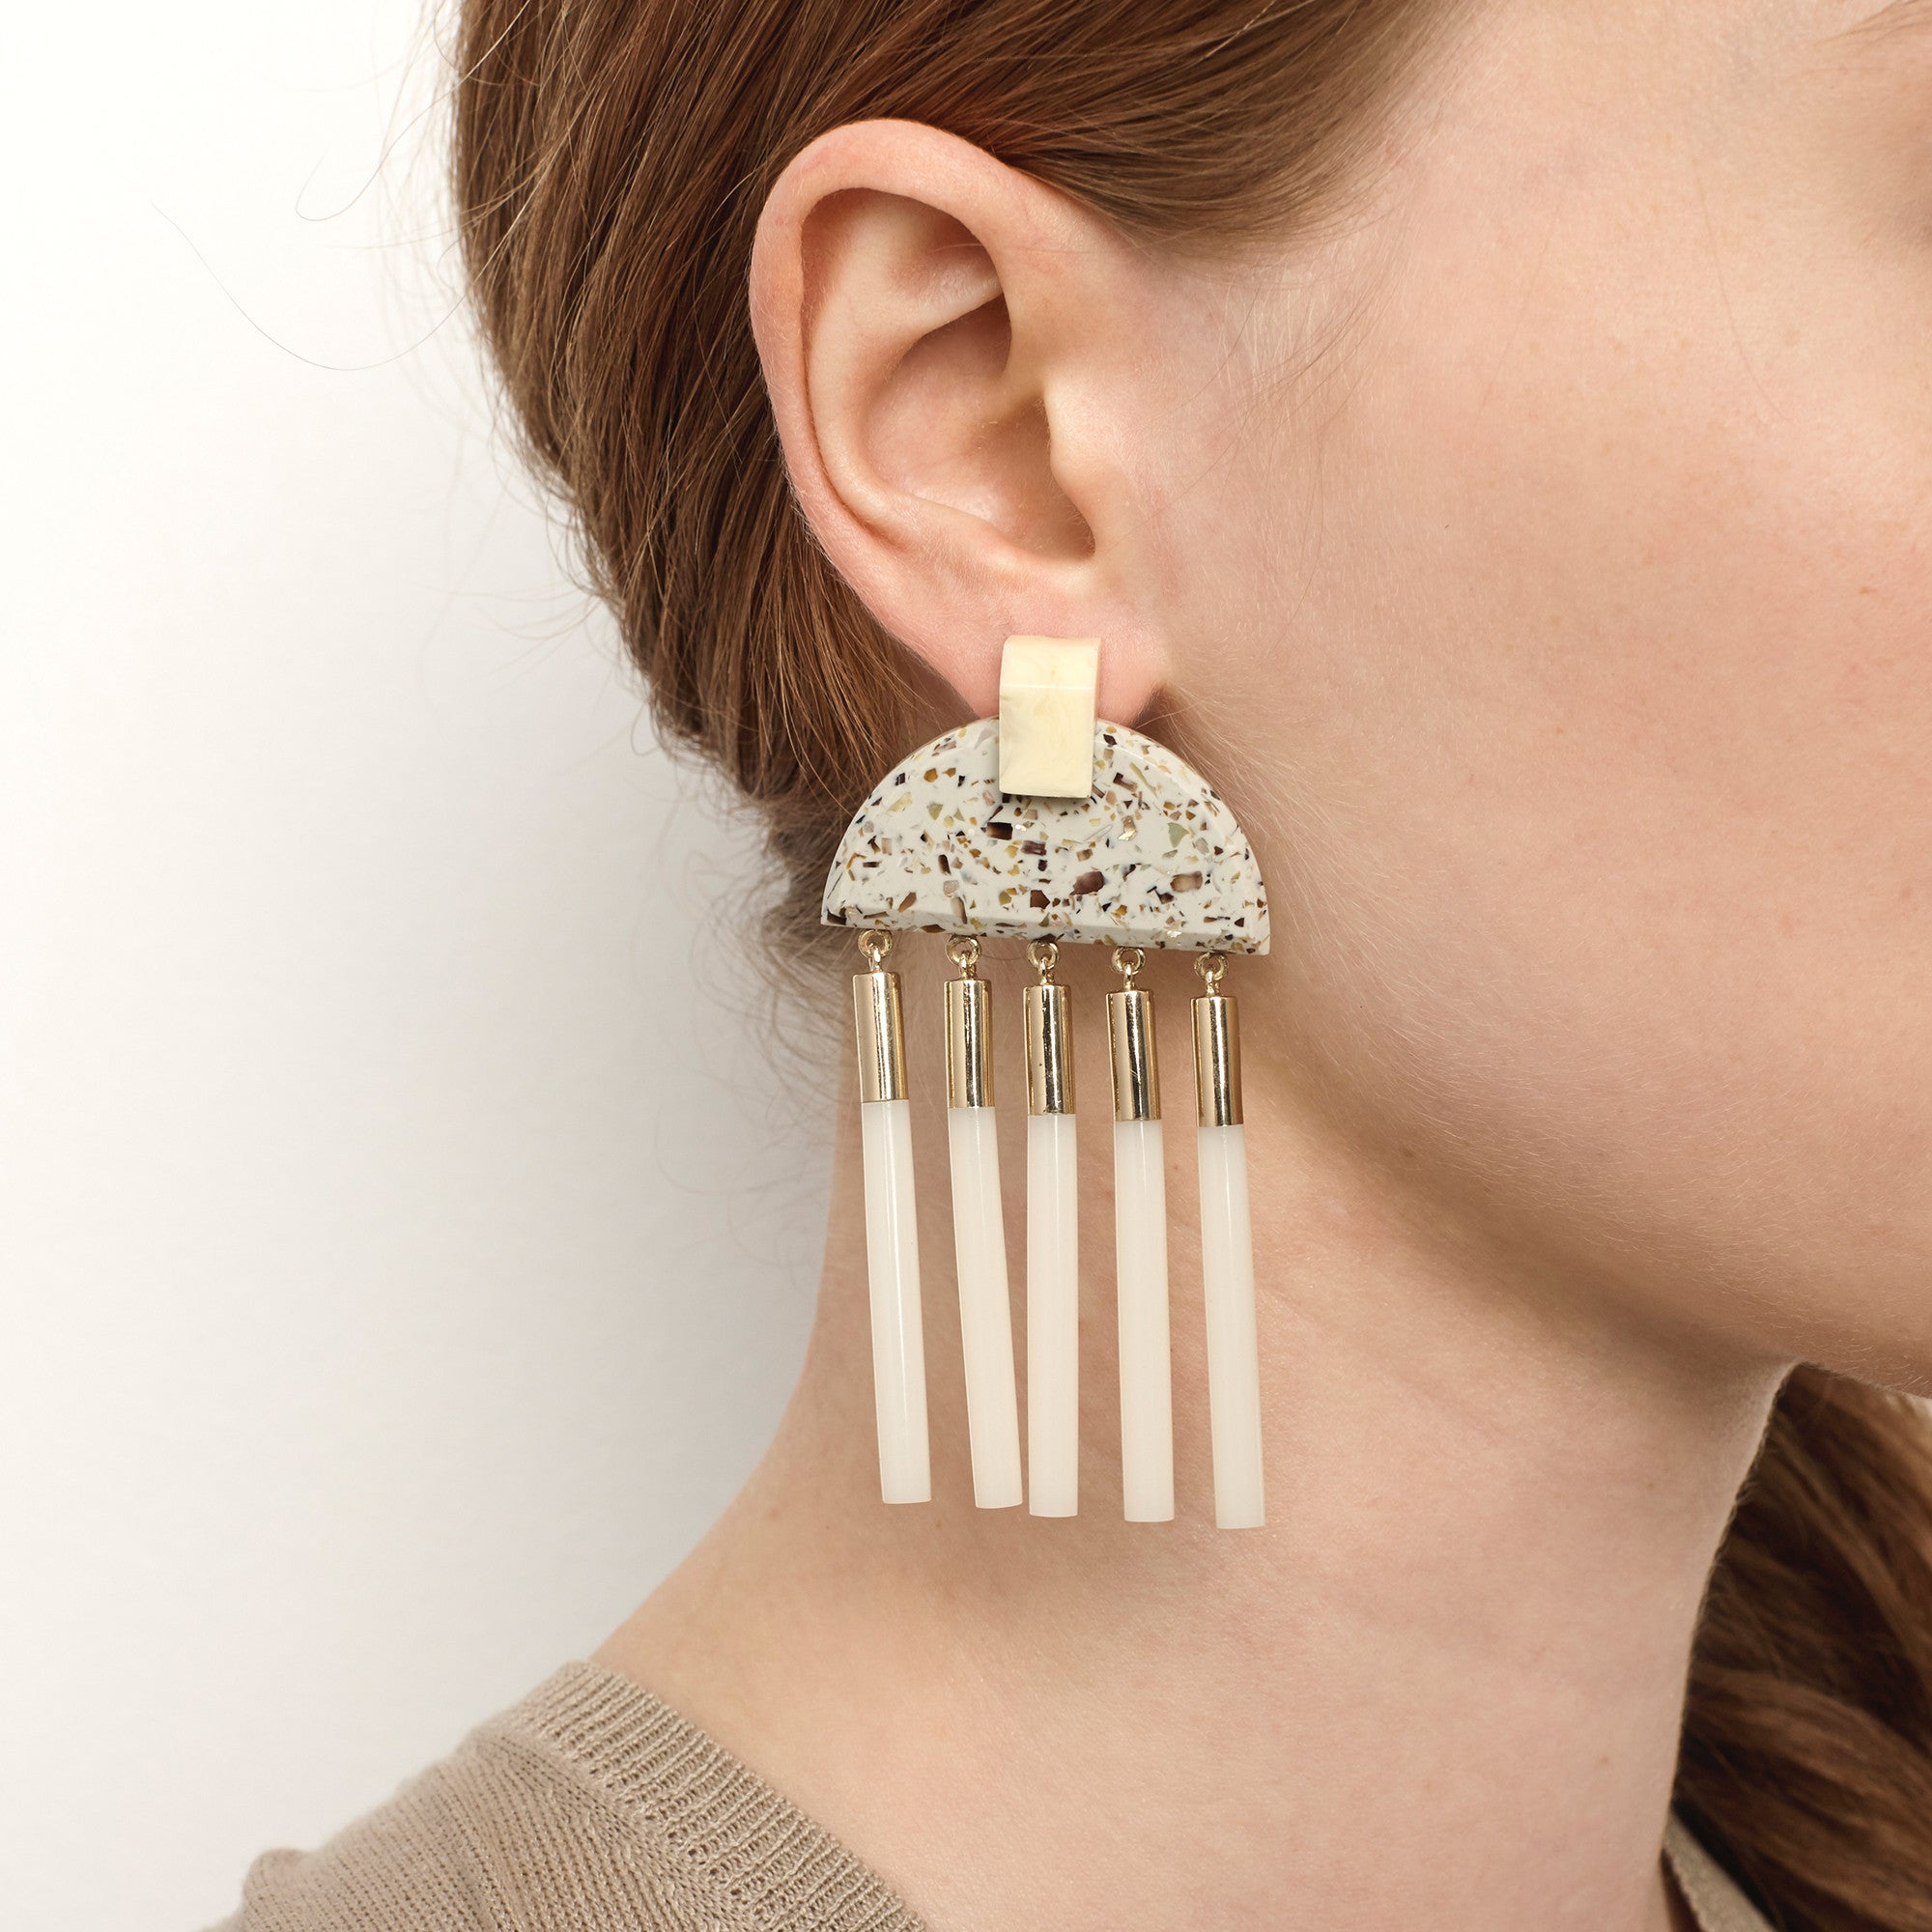 Meridian Earrings - Light Granite